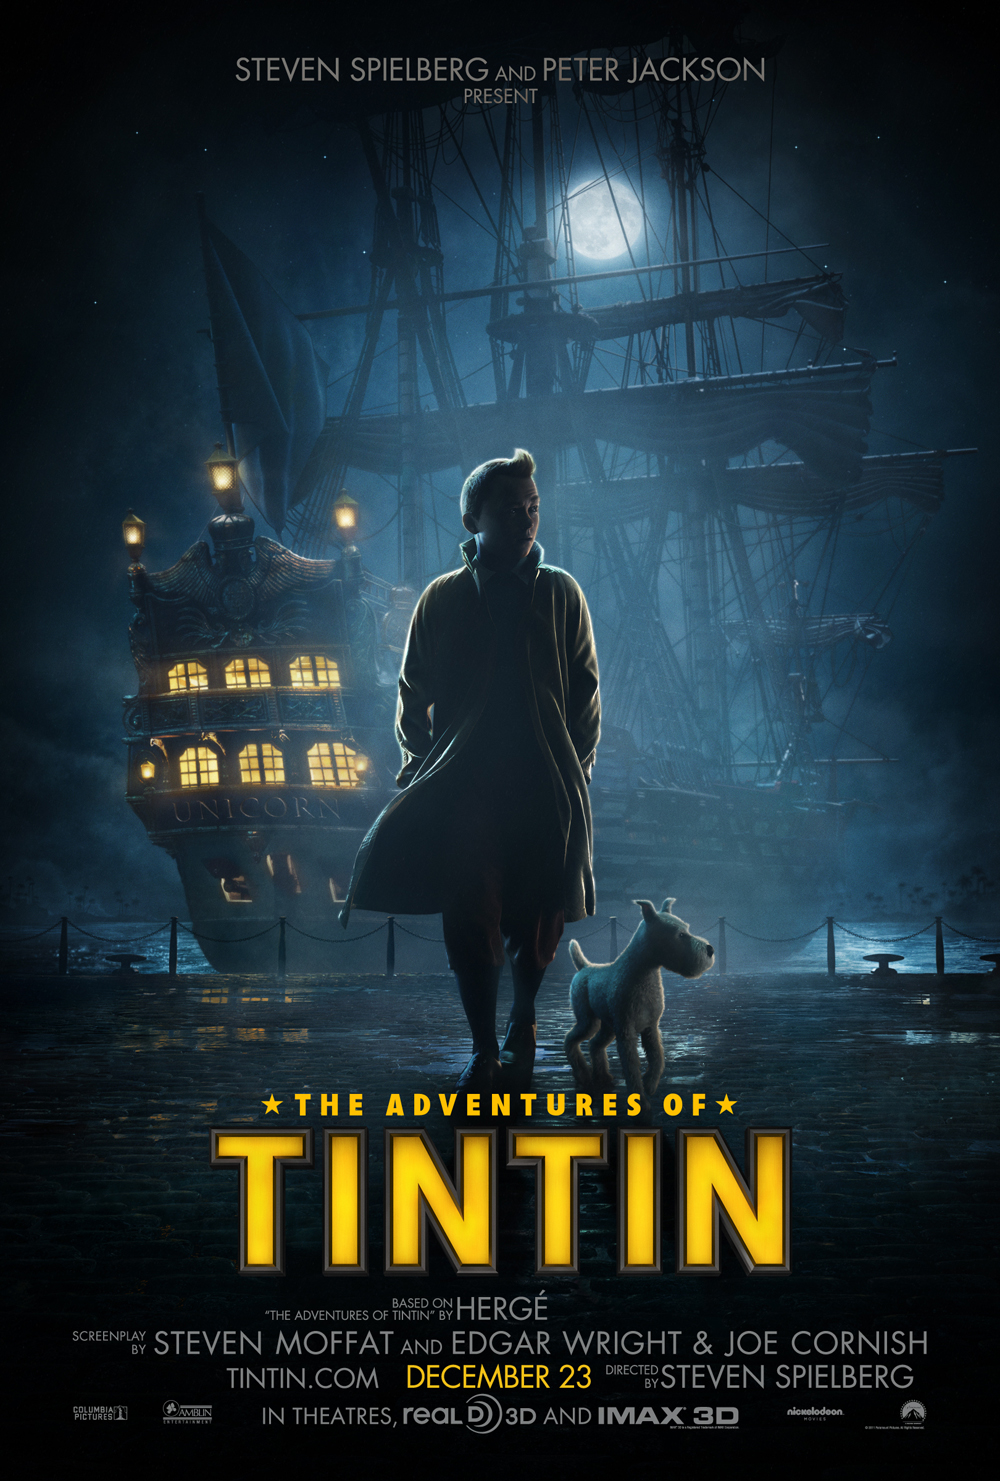 First Look: 'The Adventures of Tintin' Domestic and International Posters